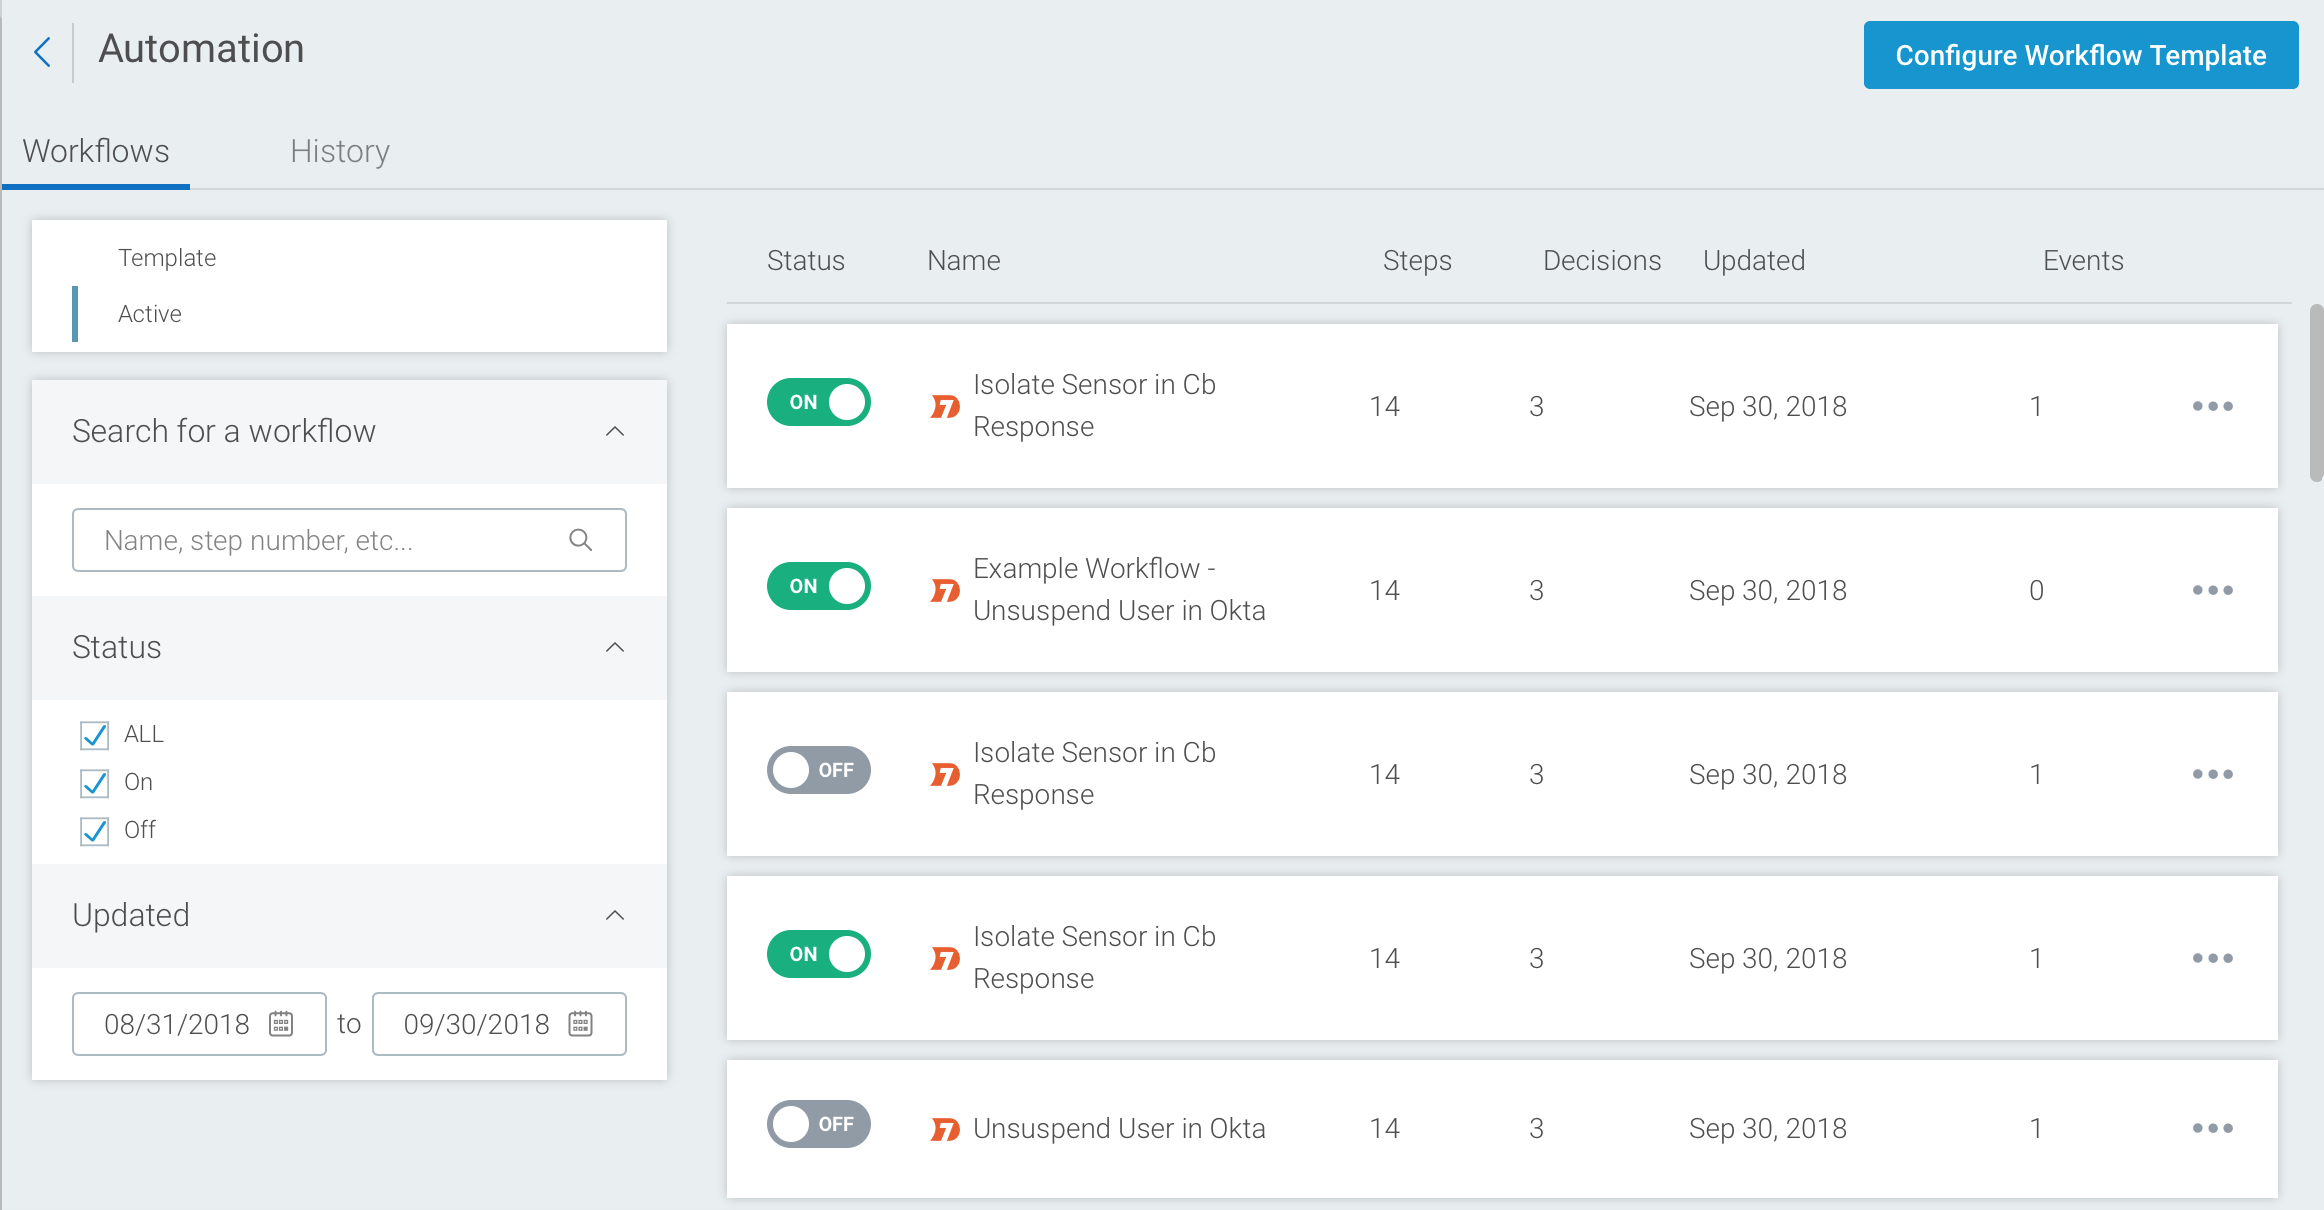 Automation Workflow Templates